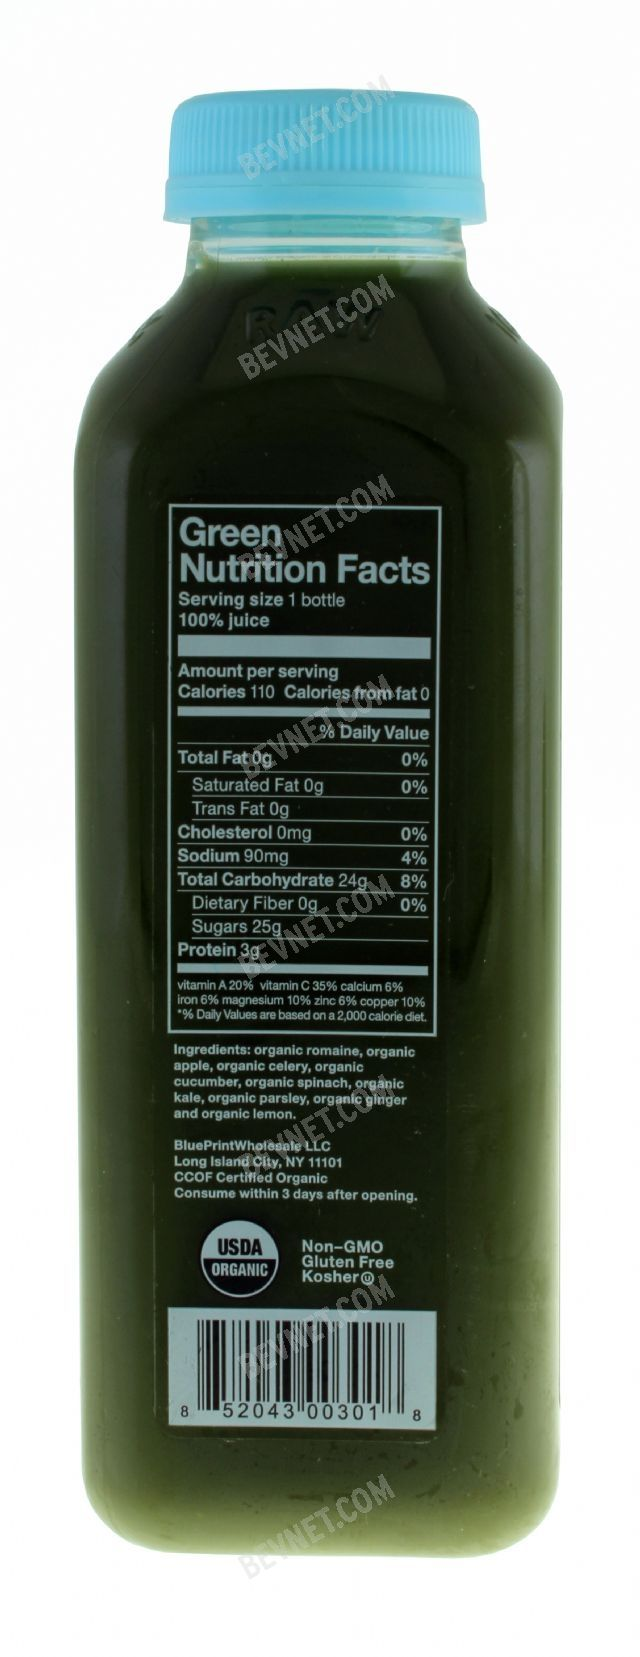 Kale apple ginger romaine spinach cucumber celery parsley lemon blueprint juice malvernweather Choice Image